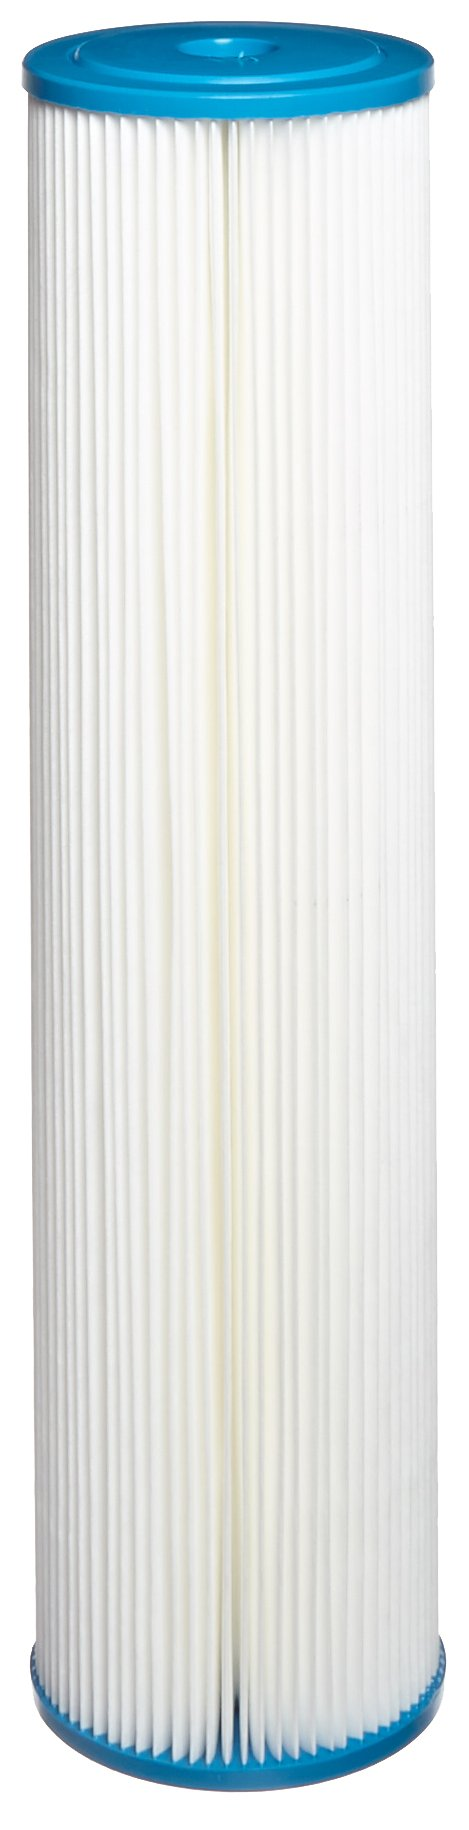 Hydronix SPC-45-2005 Polyester Pleated Filter 4.5'' OD X 20'' Length, 5 Micron by Hydronix